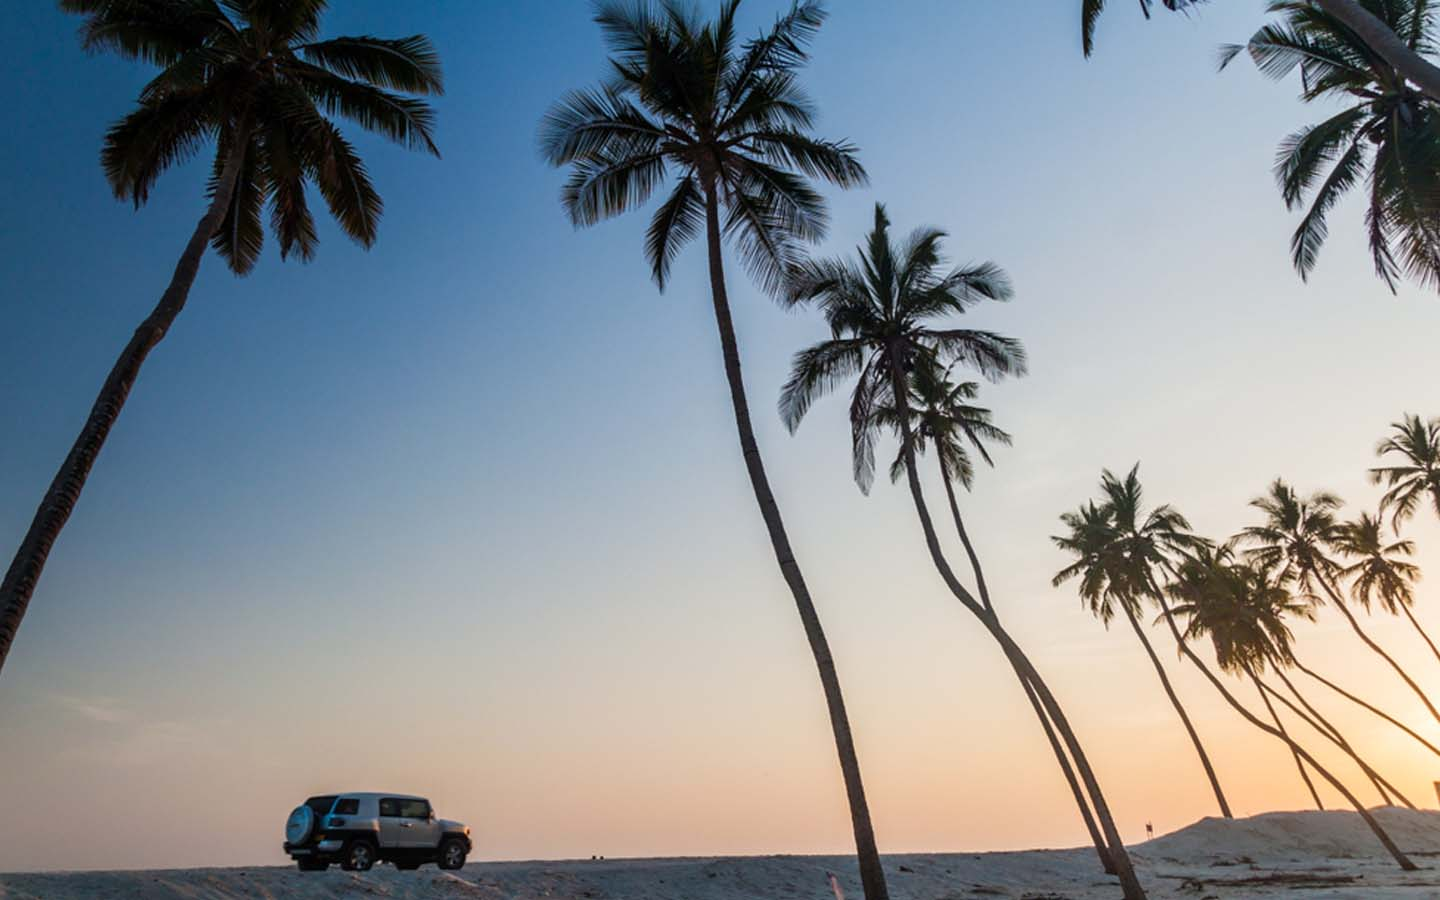 Four-wheel drive vehicle under palm trees in Salalah